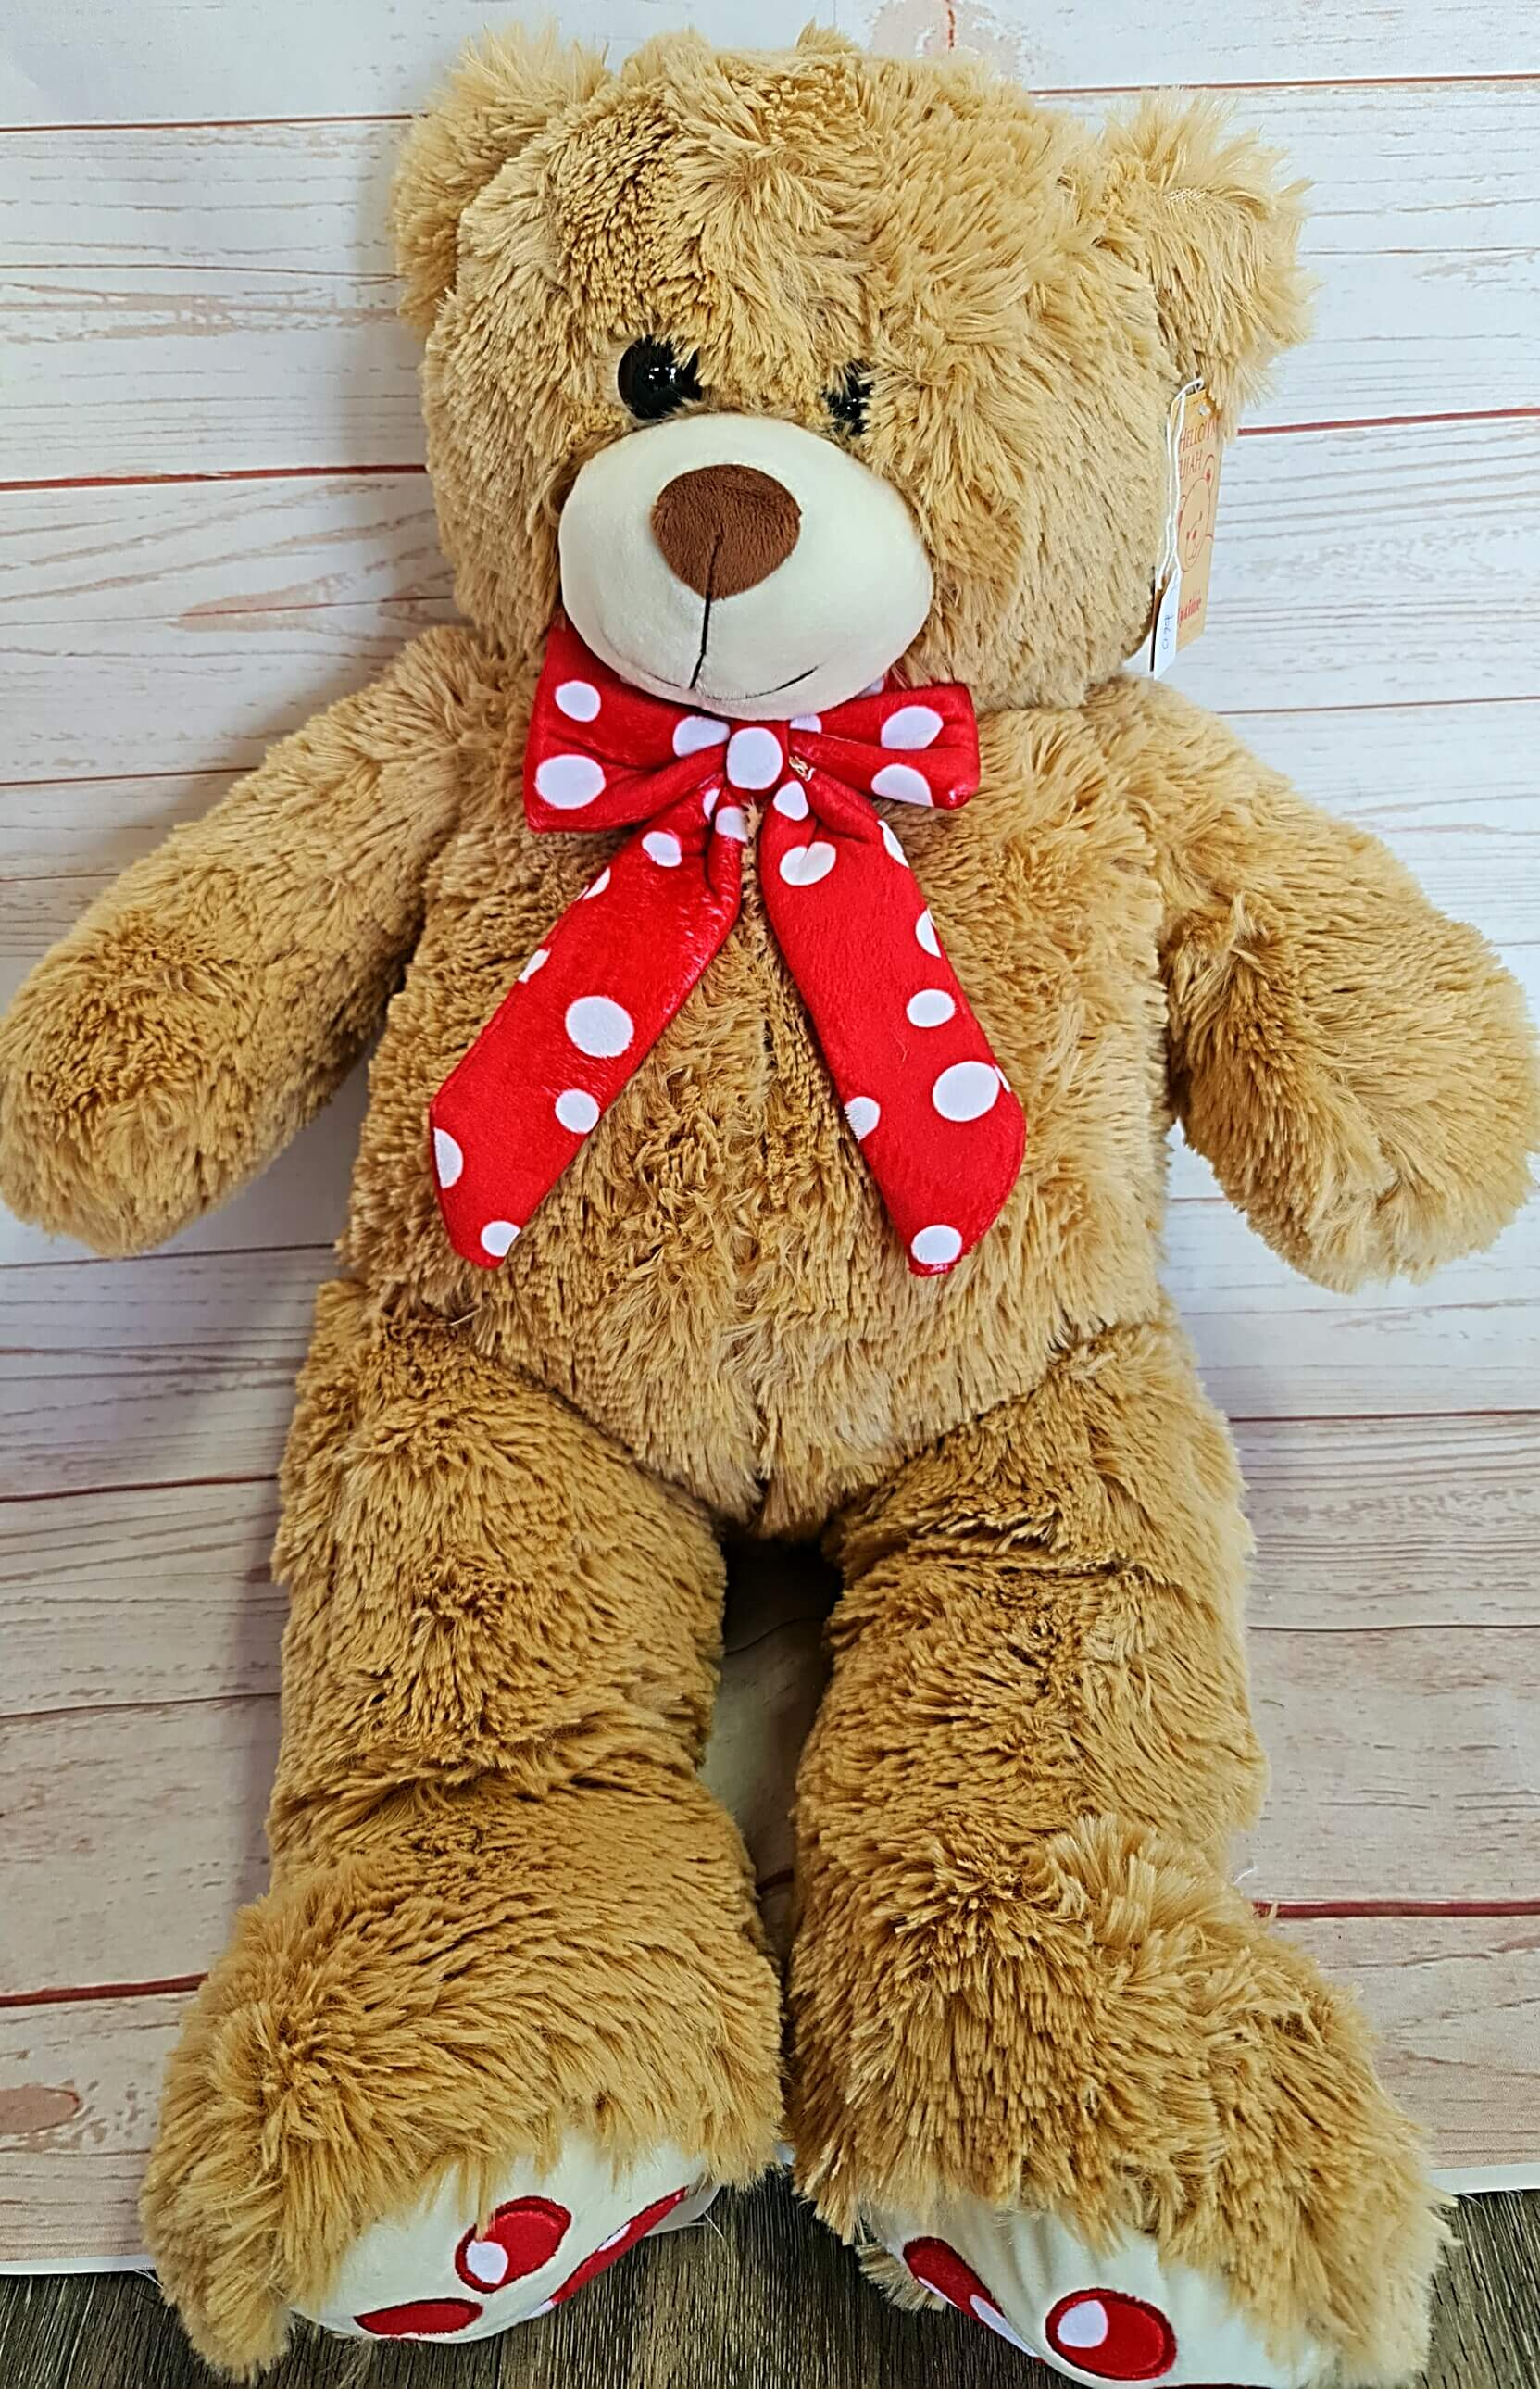 Elijah Brown Bear is a classic design made of soft fluffy fur with a red and white polka dot bow around his neck and matching paw prints on his feet. Elijah sits 66cm tall